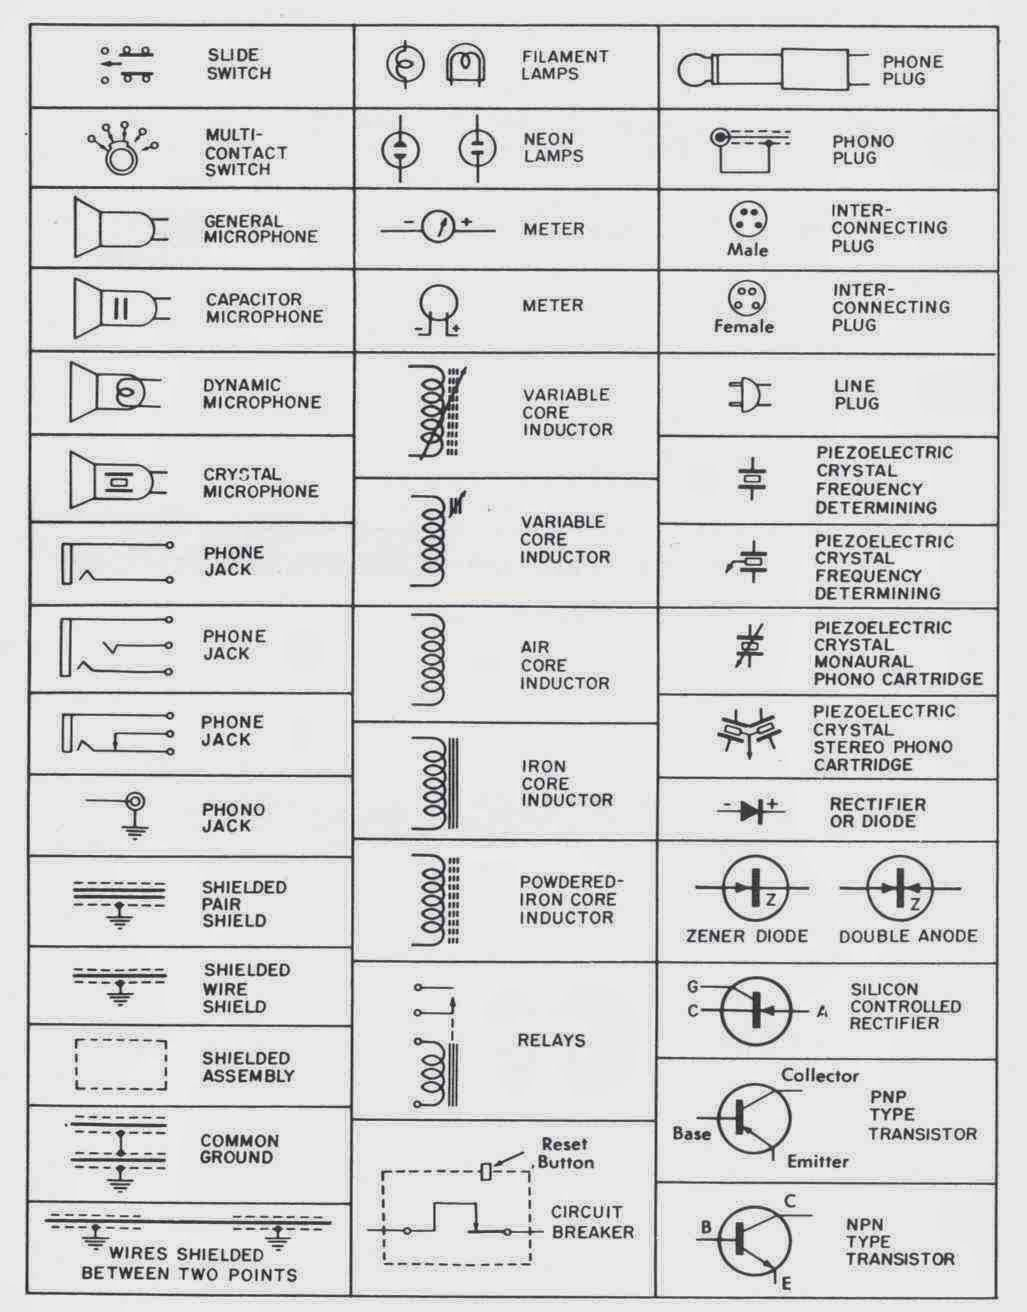 Wiring Diagram Symbols Bilder Wire Data Schema For Homebuilt Aircraft Diy Enthusiasts Electrical 11 Engineering Pics Yasir Rh Pinterest Ca